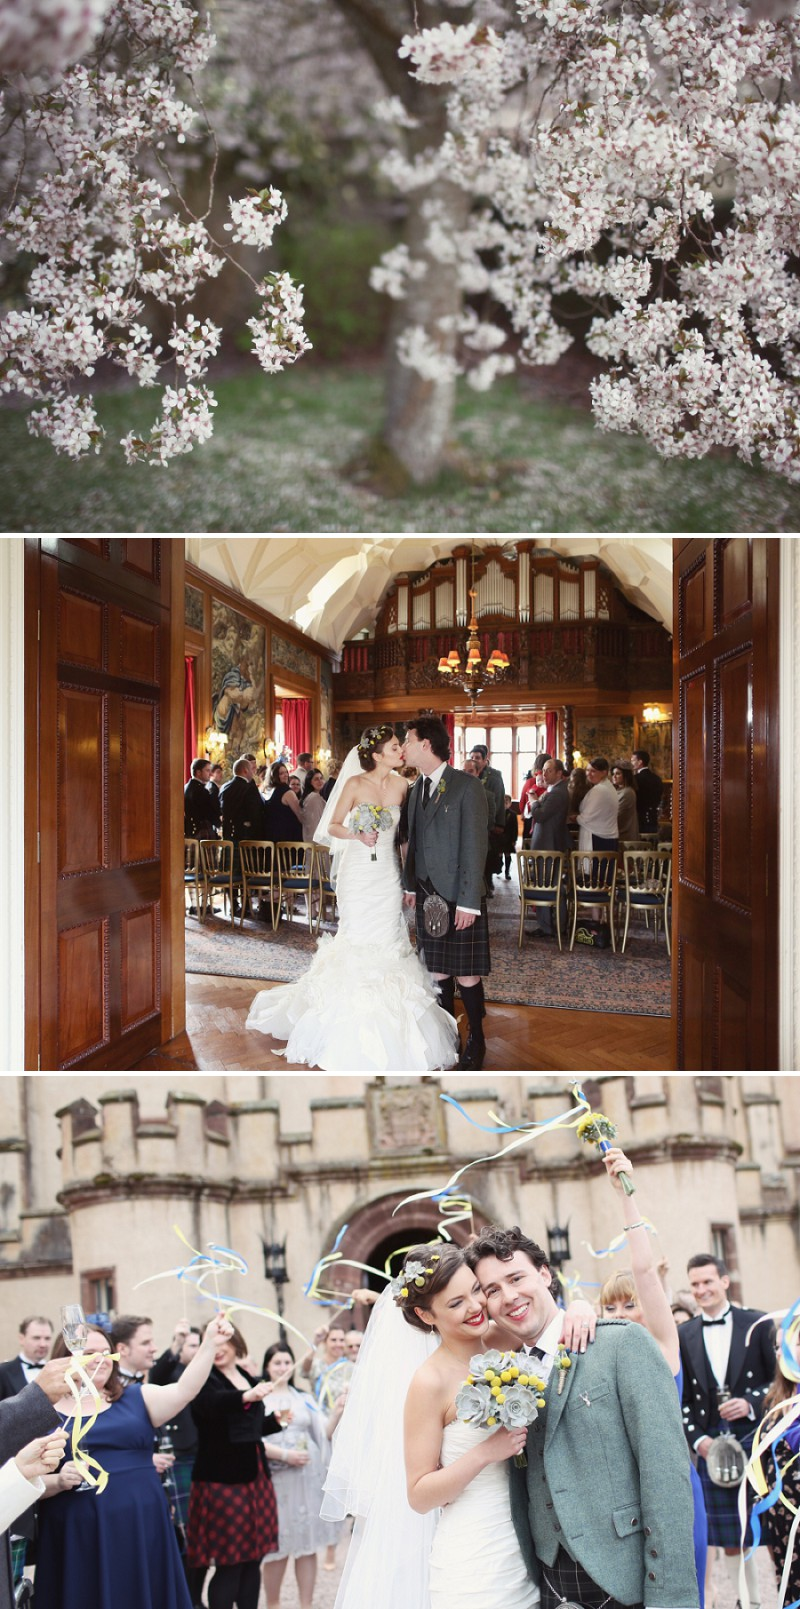 A Super Glamorous Spring Scottish Wedding At Fyvie Castle With An Ian Stewart Ruffled Fishtail Dress and A Yellow Billy Ball Bouquet With Photography By Craig and Eva Sanders._0008